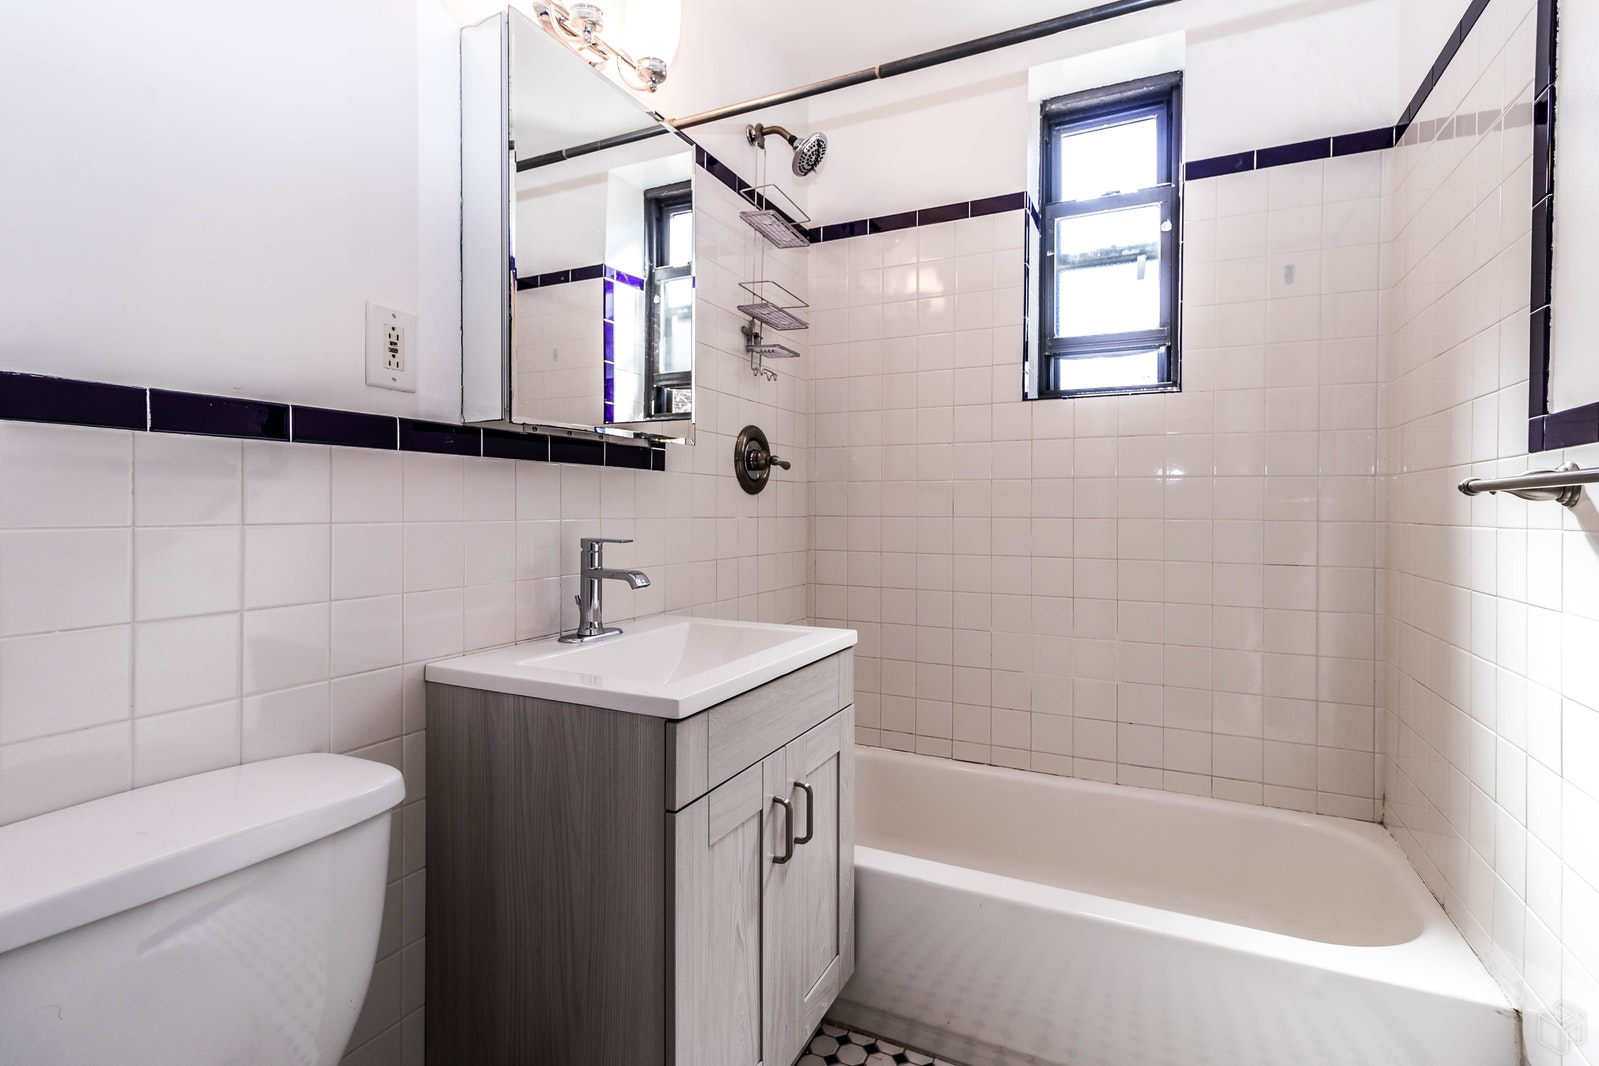 19 -20 80 Street 1A, Astoria, Queens, NY, $1,700, Web #: 19501016